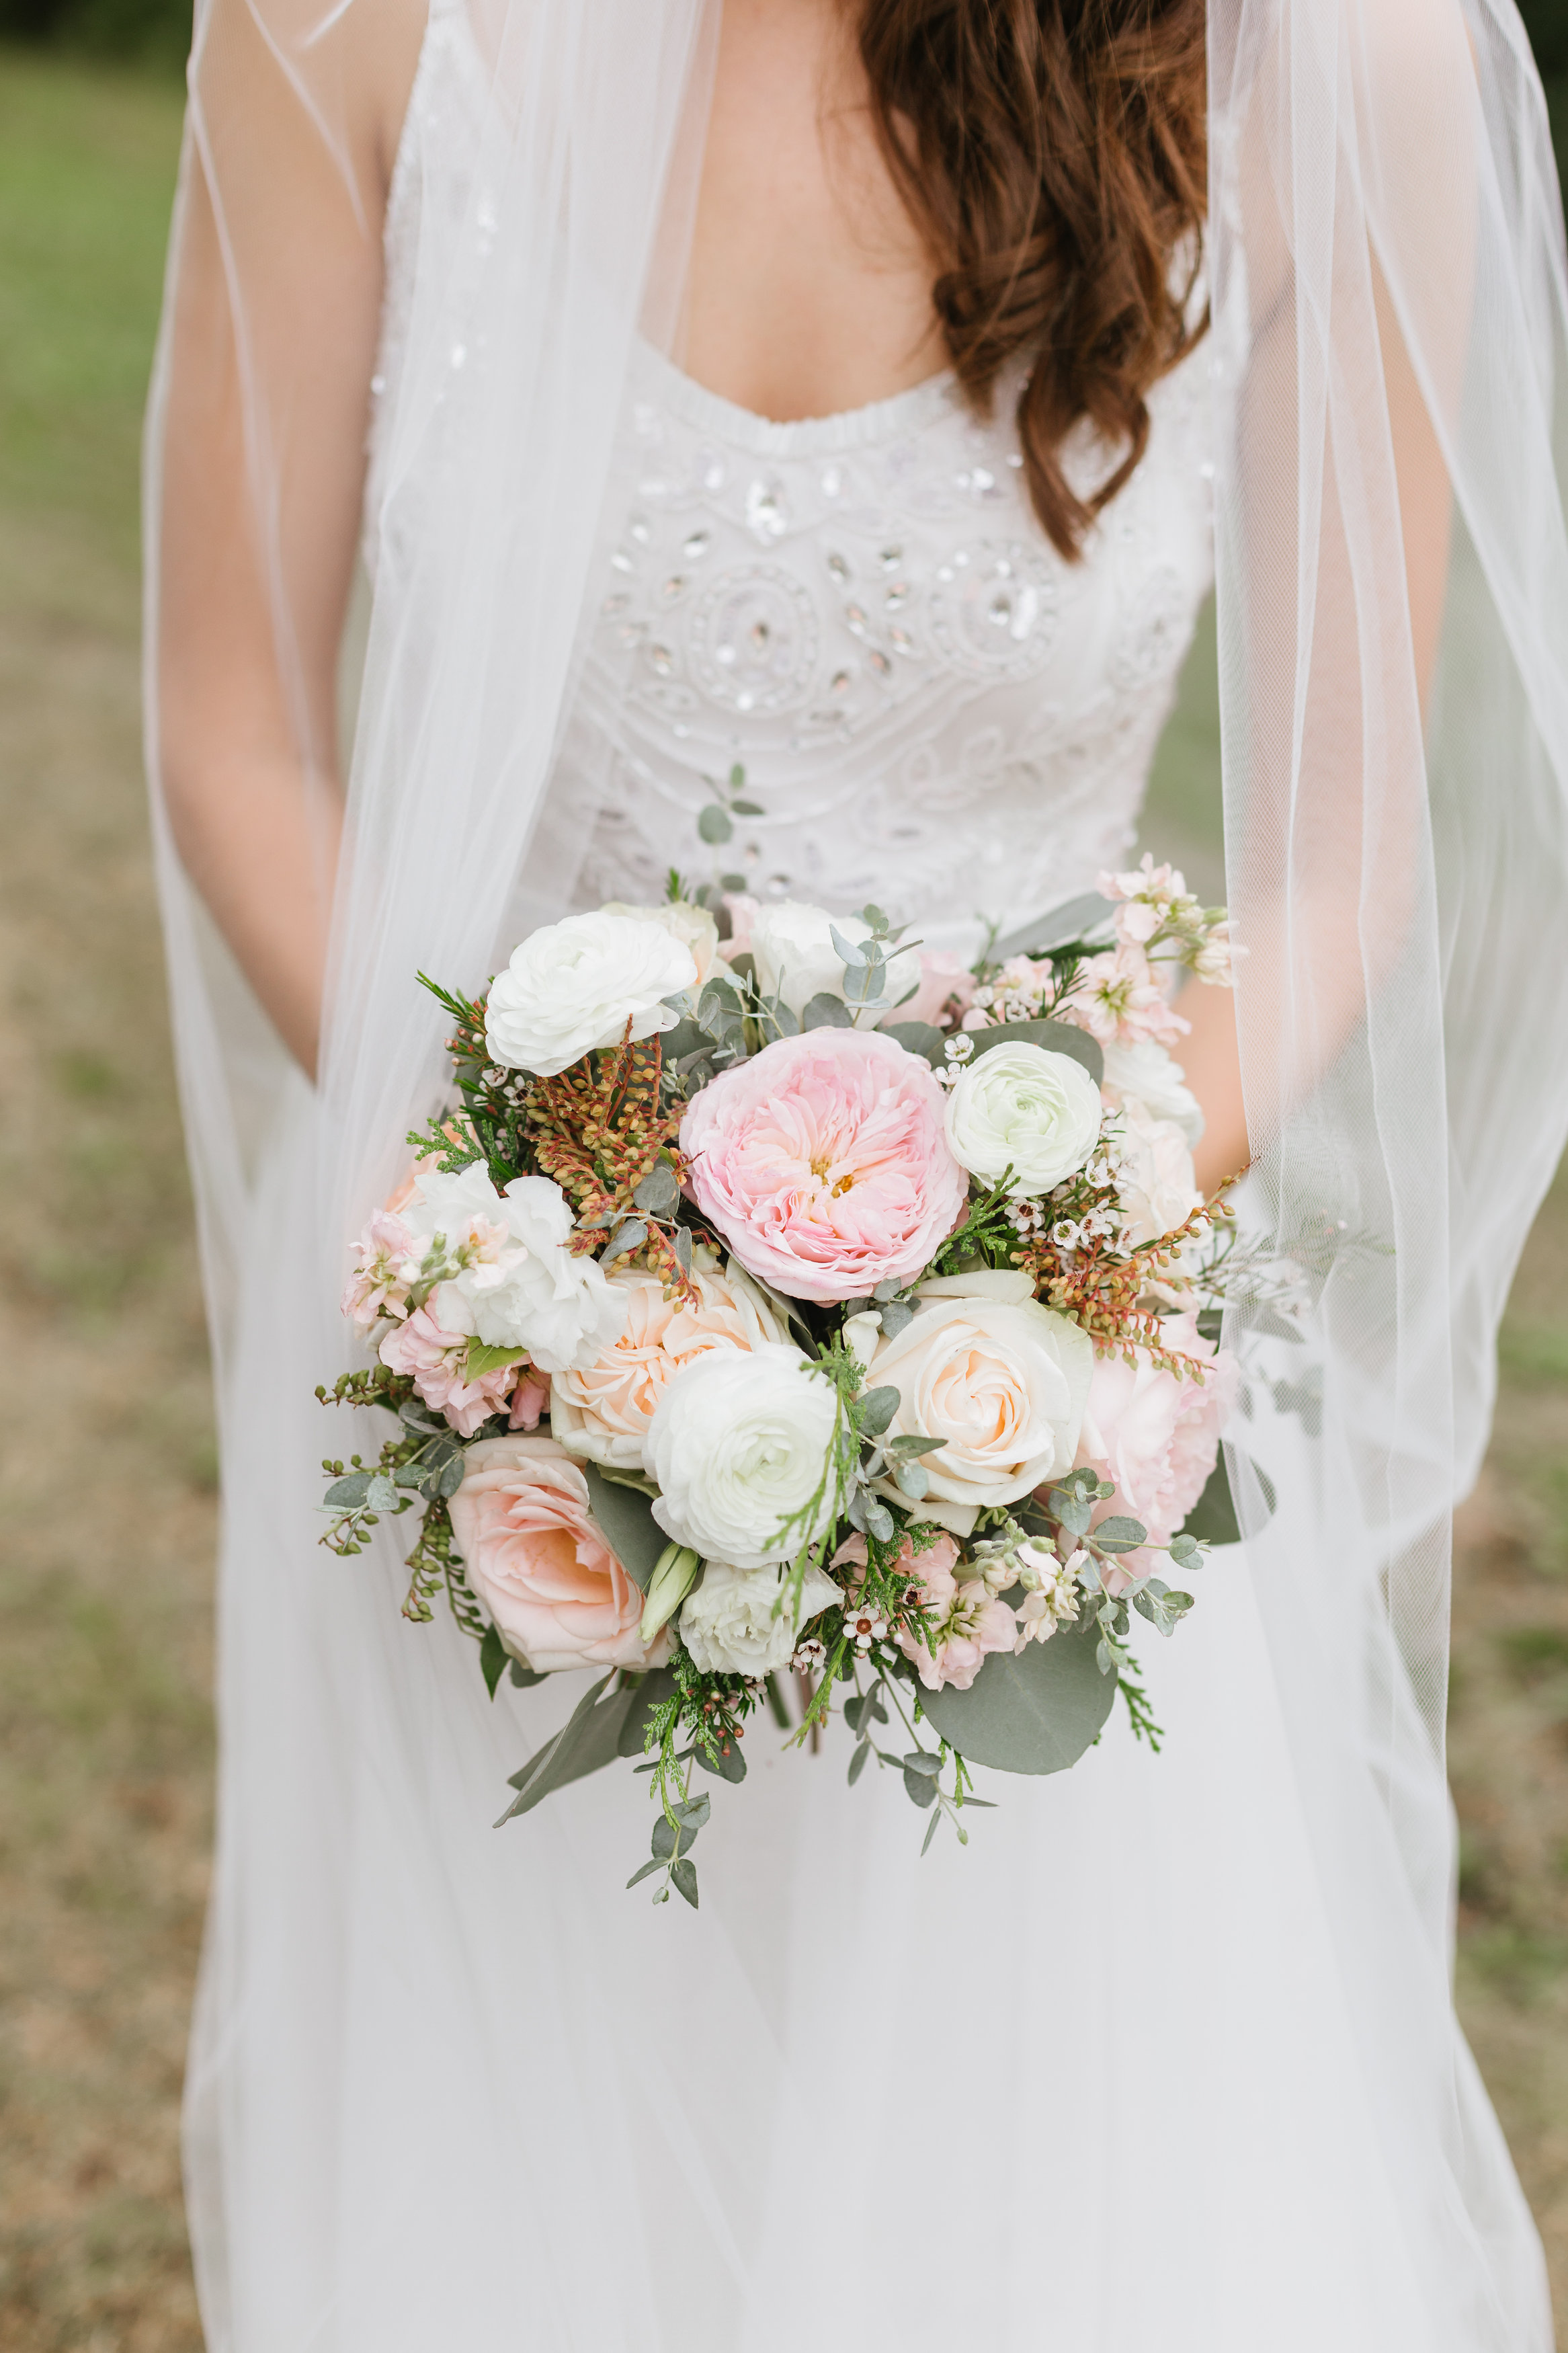 Bridal bouquet with david austin garden roses, pieris, and wildflowers